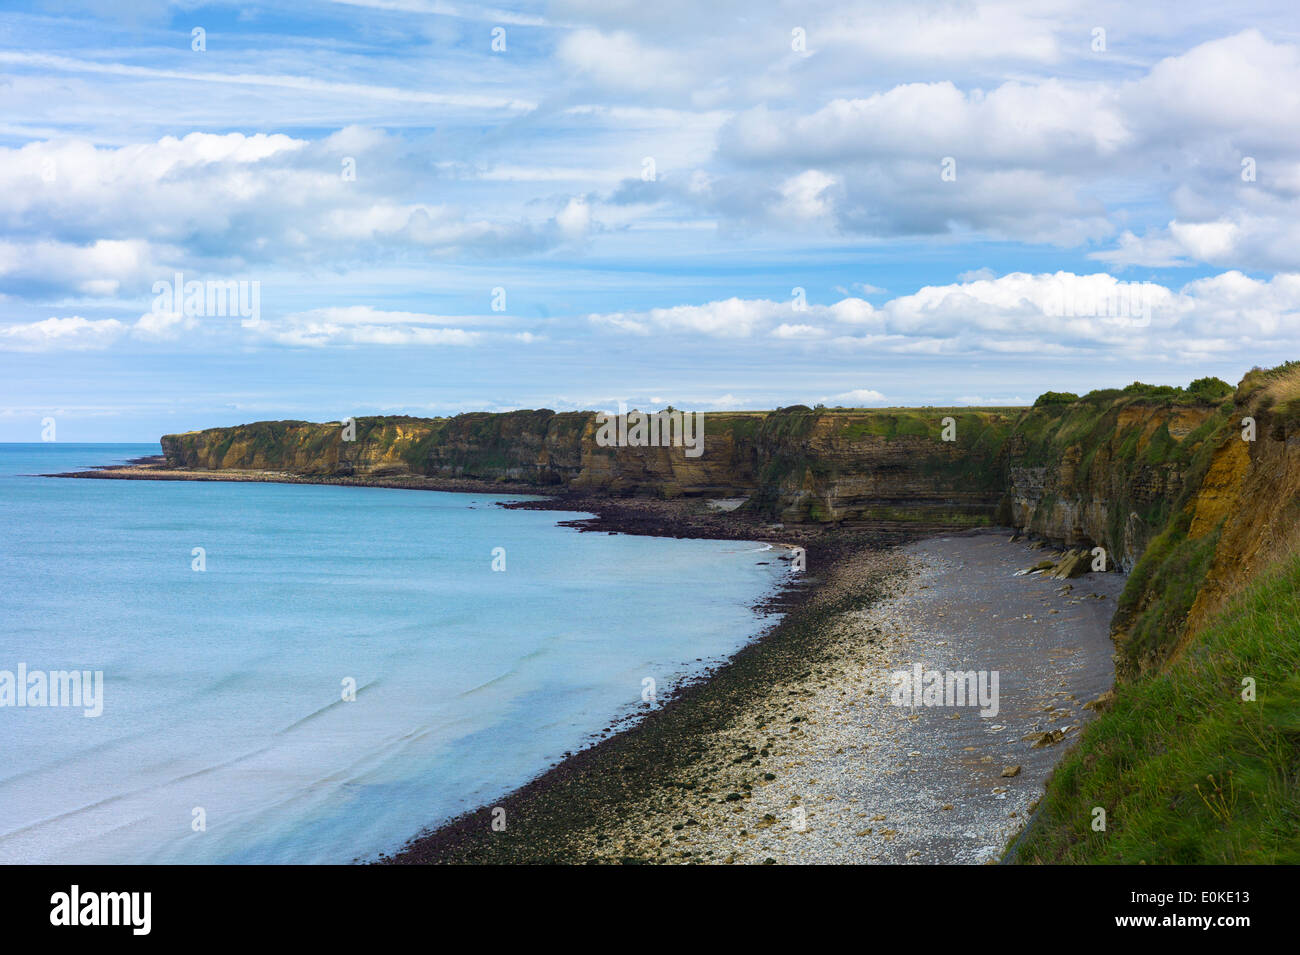 The beach at La Pointe du Hoc where allied forces came ashore during World War II in Normandy, France - Stock Image